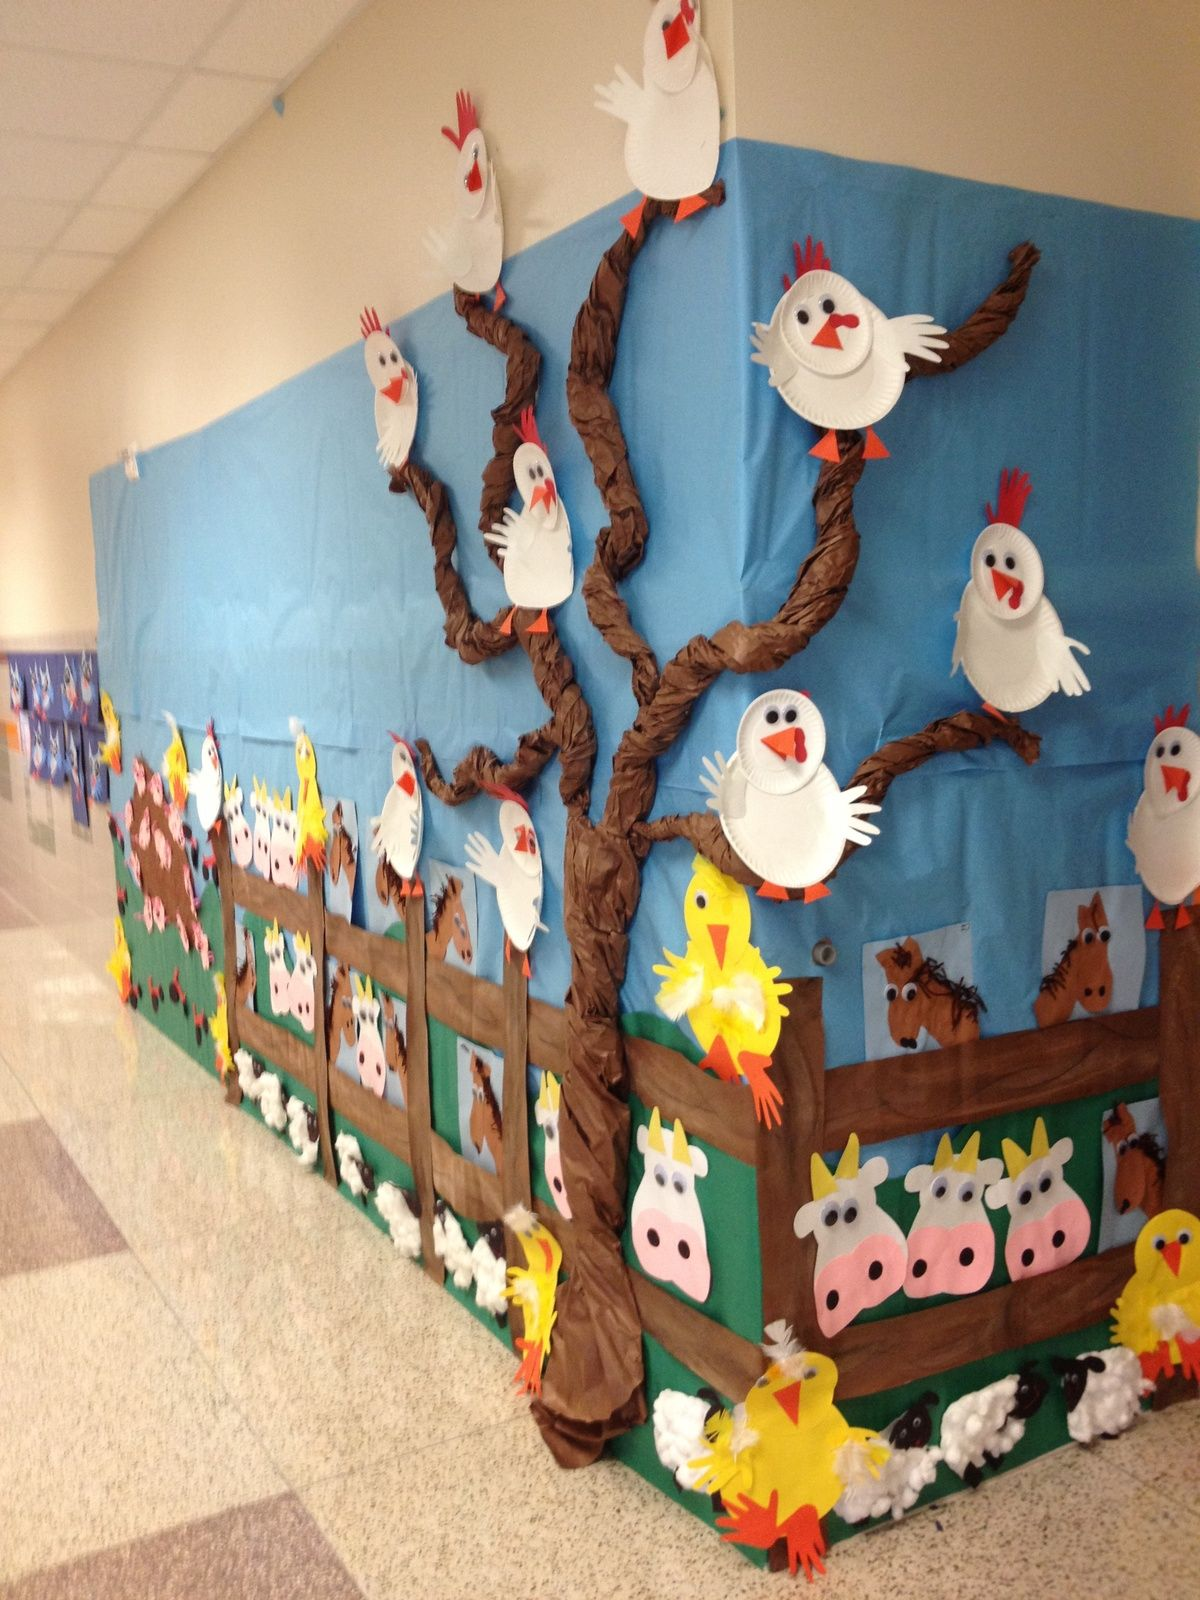 Chicken wall mural | Just For Kids | Pinterest | Granjas, Aula y ...